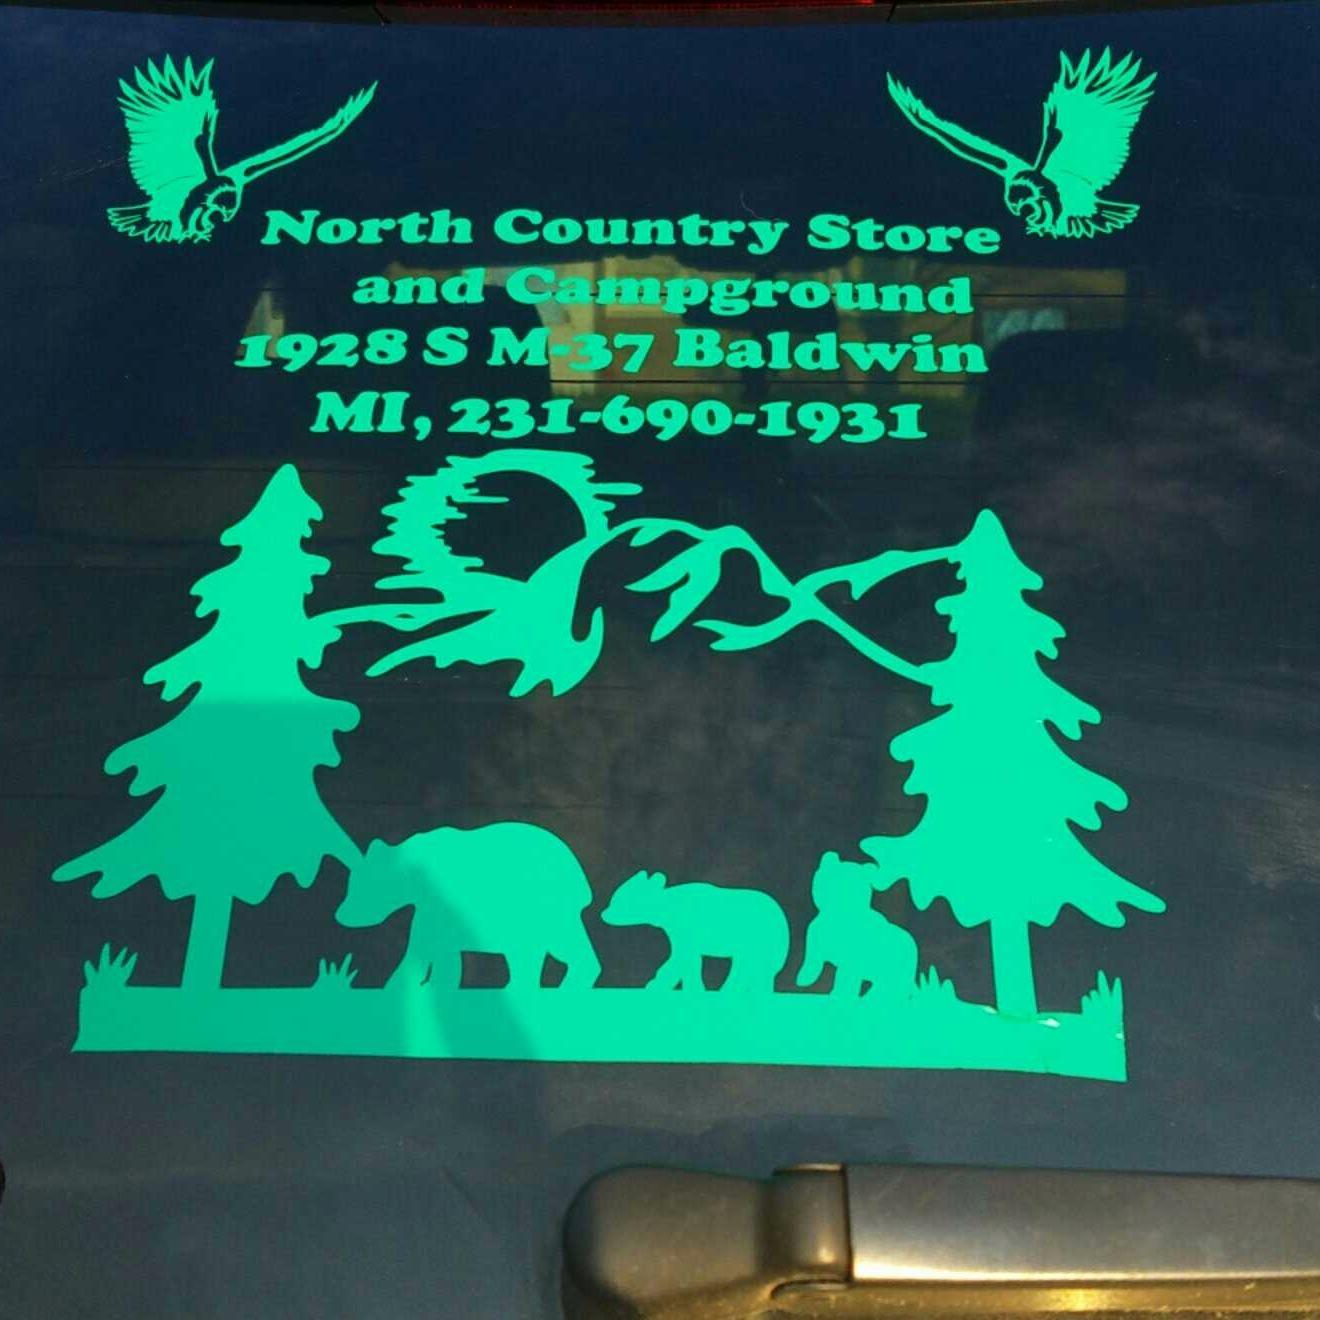 North Country store and Campground